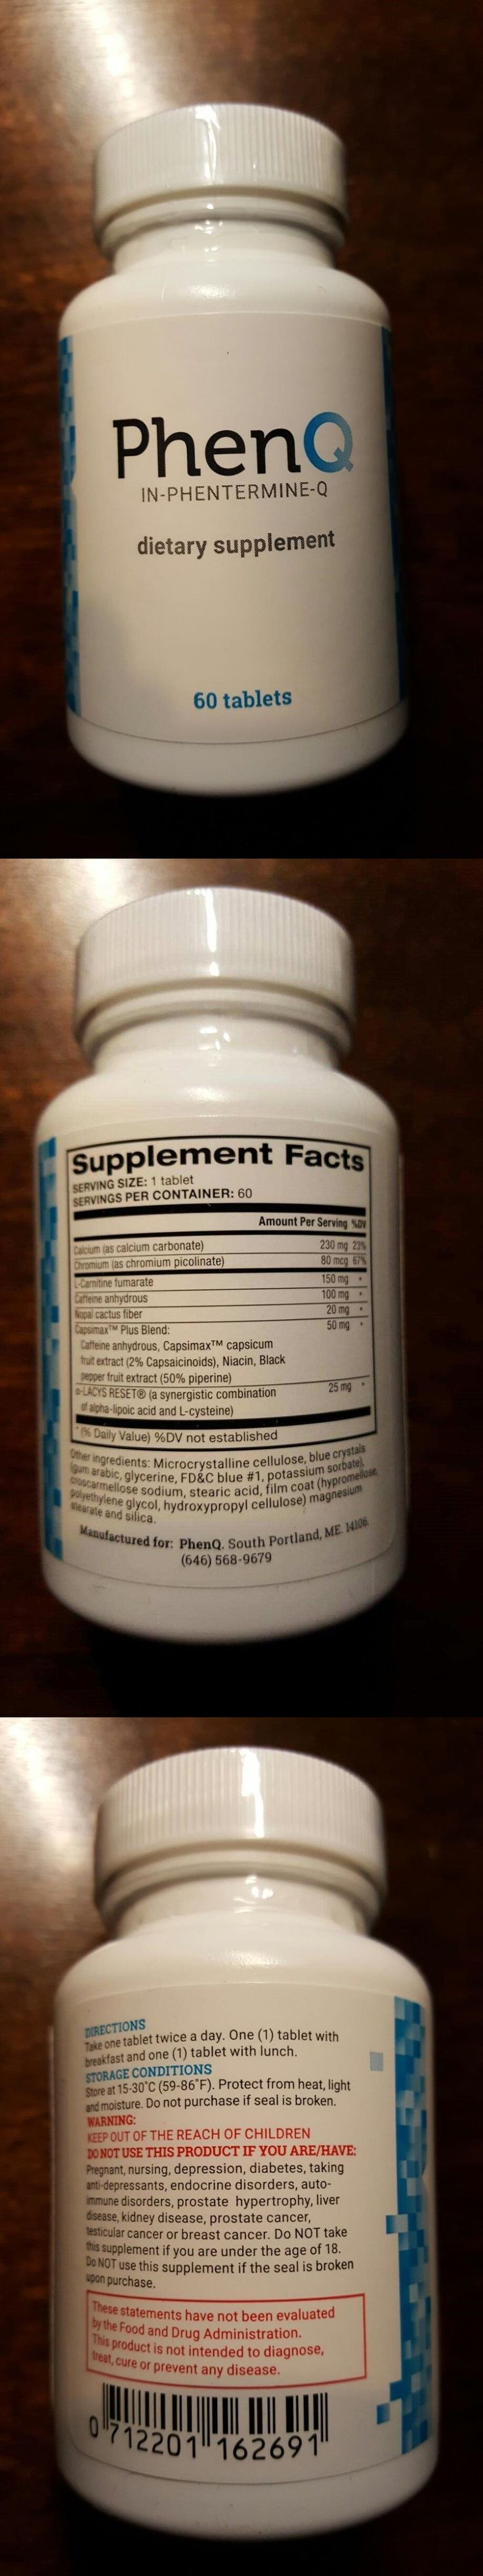 Appetite Control Suppressants: Phenq Diet Pills * Best Weight Loss Supplement * Summer Thin Skinny 60 Capsules -> BUY IT NOW ONLY: $59.95 on eBay!